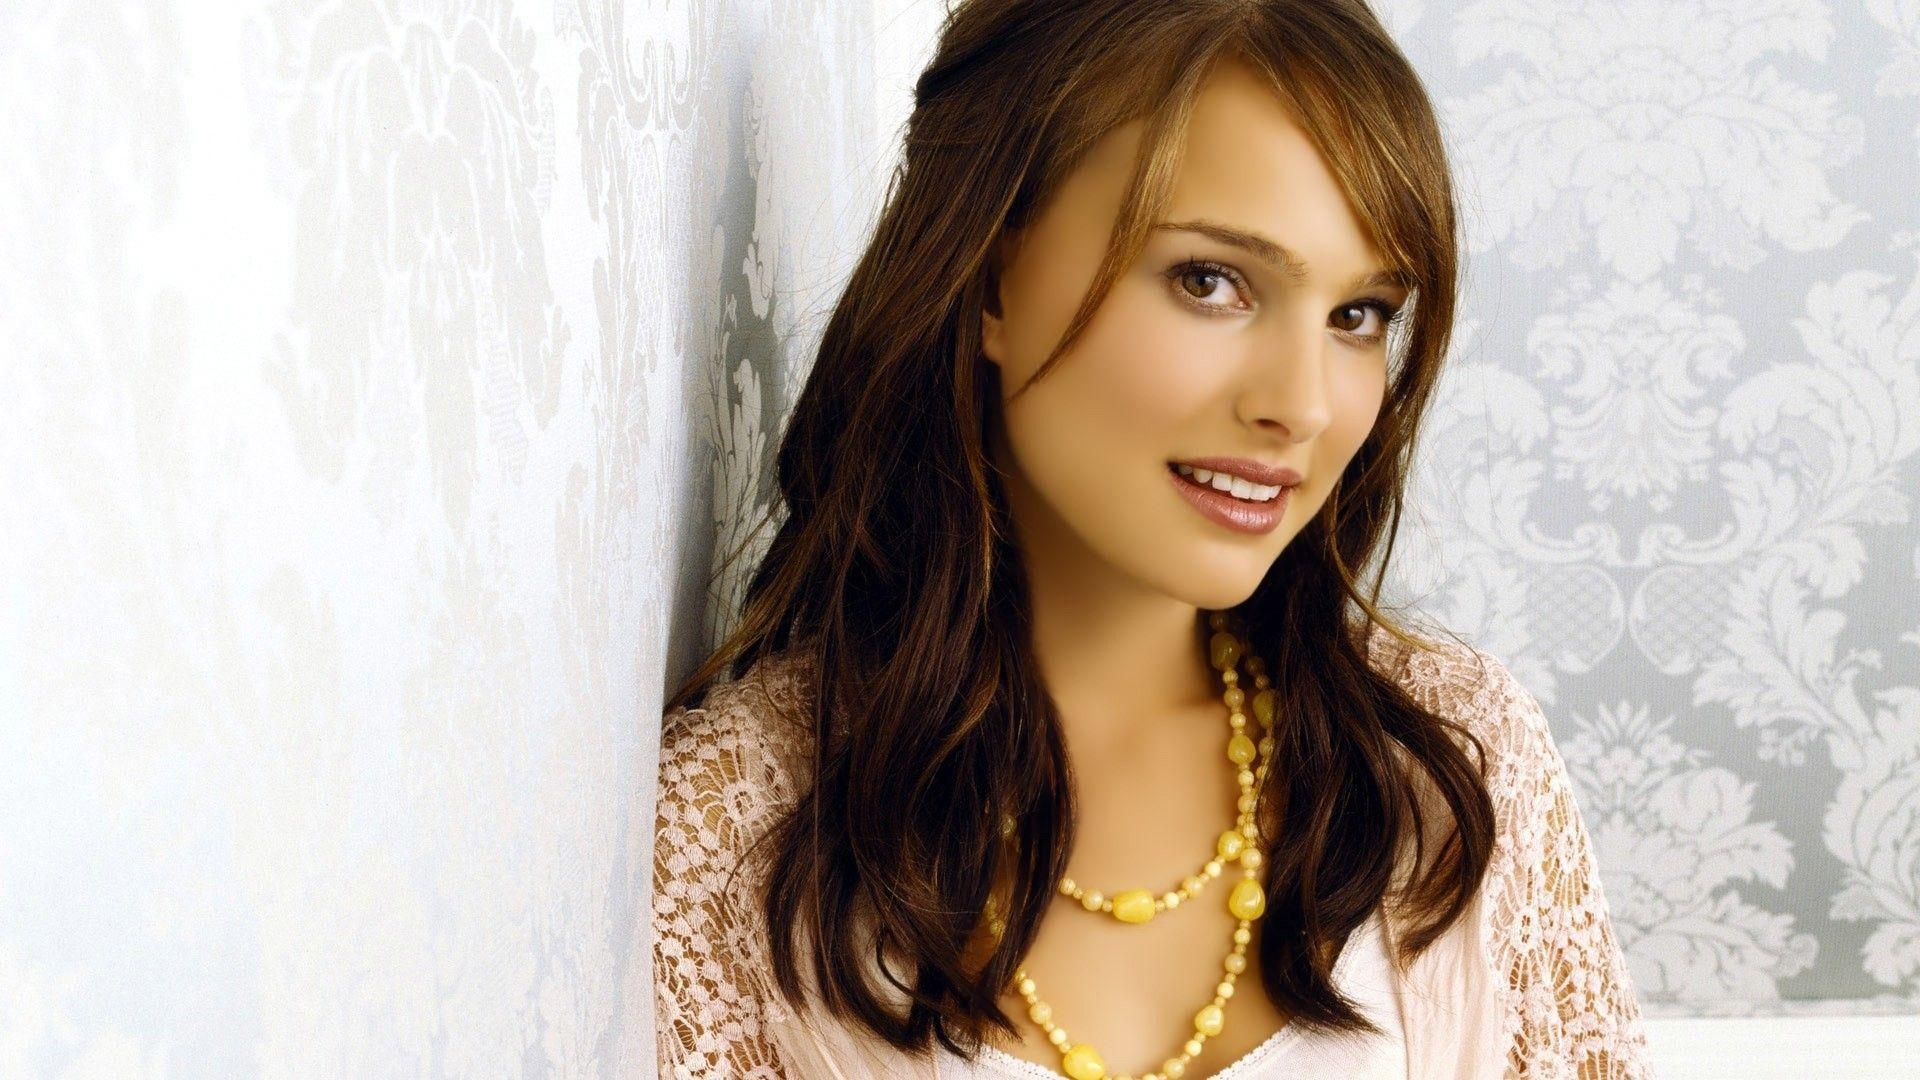 Natalie Portman Wallpapers HD Download | walljpeg.